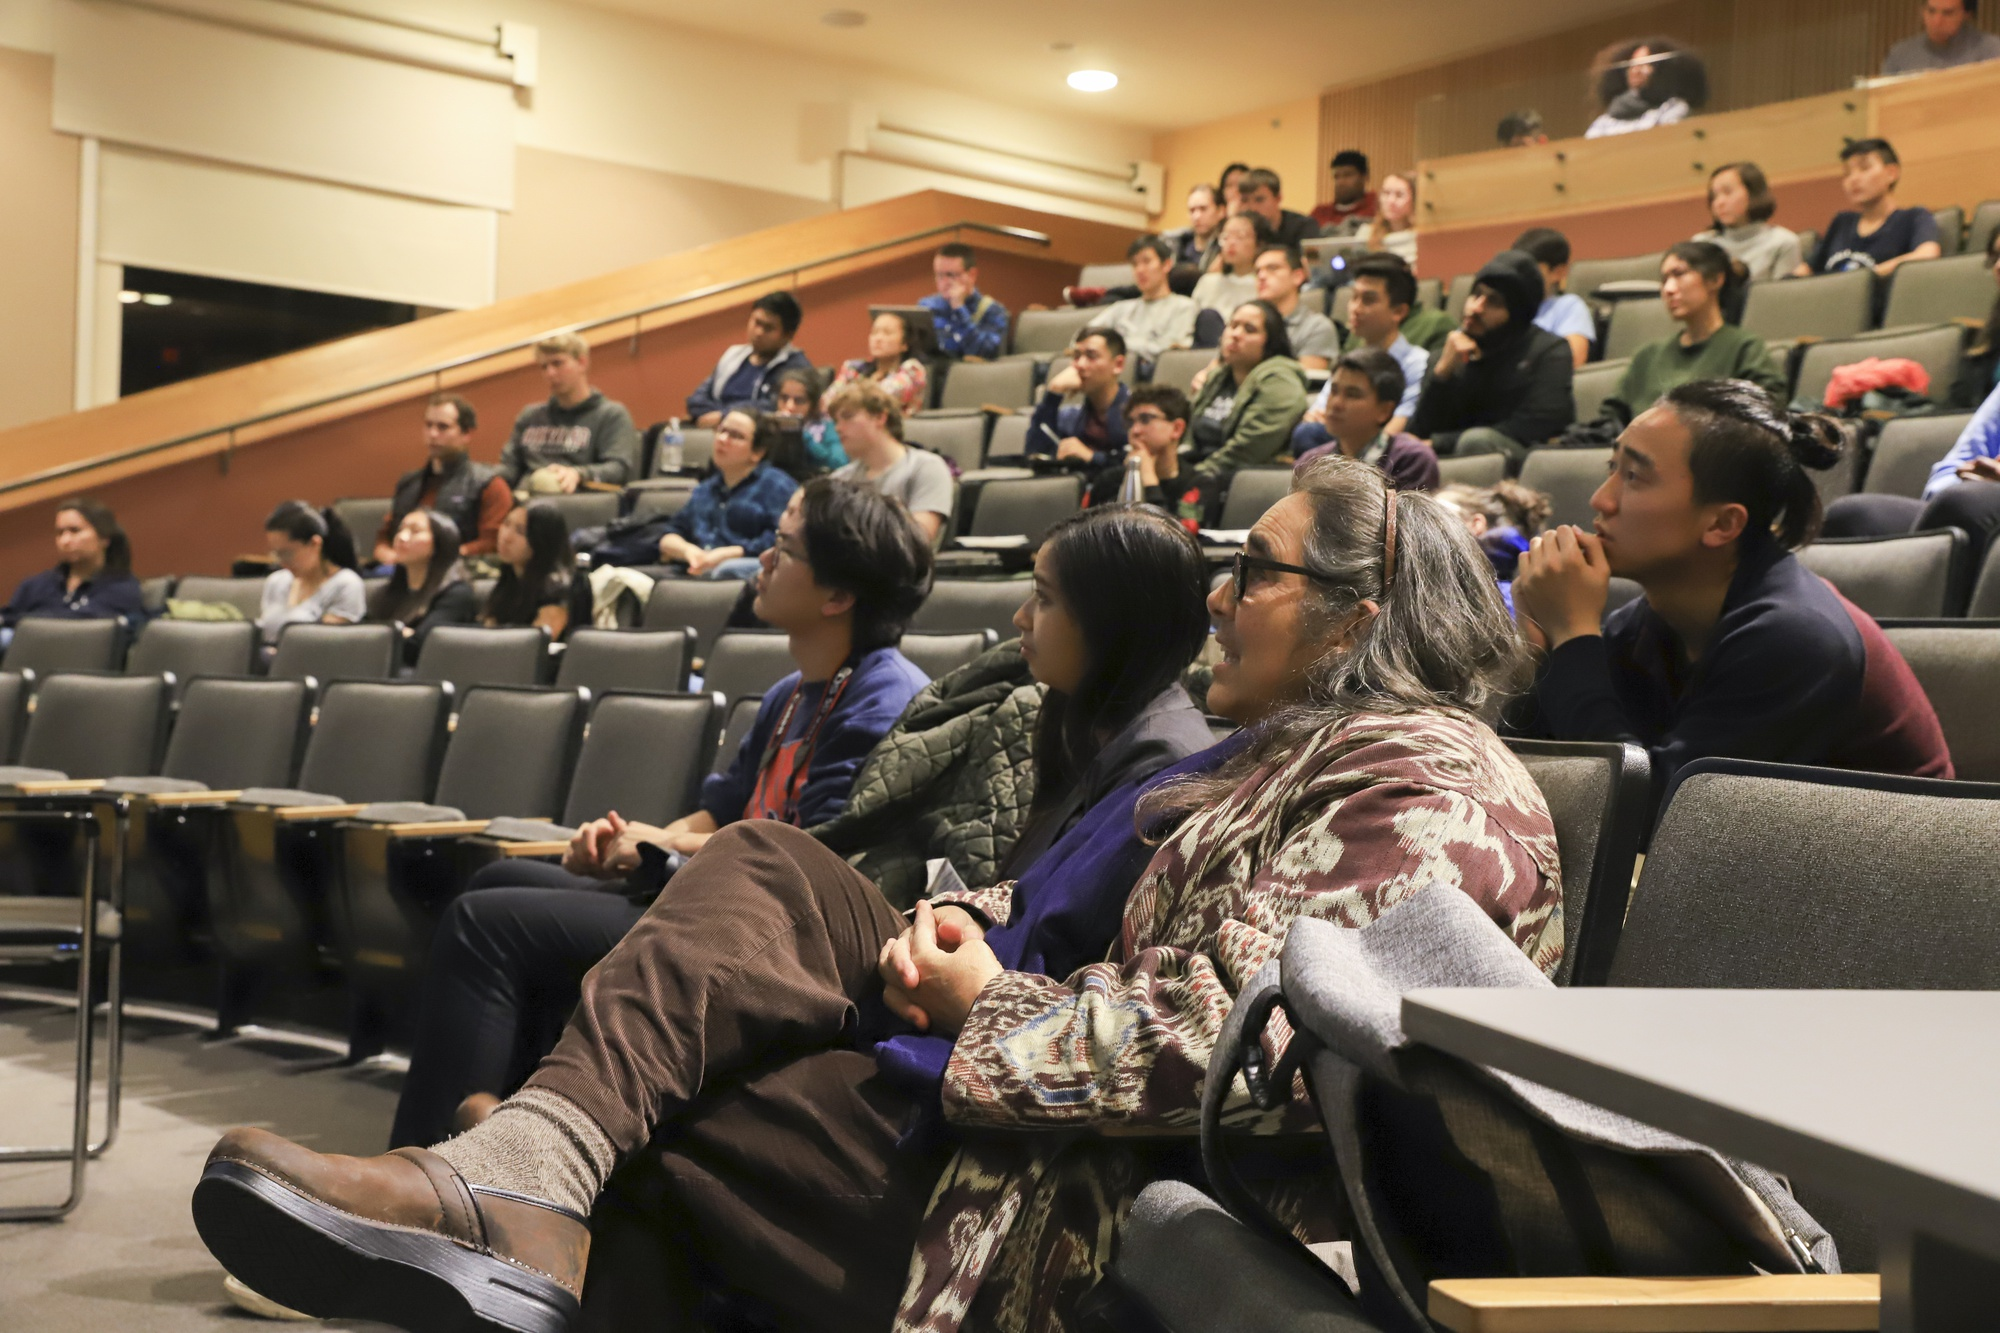 Members of the Harvard community attend a discussion on the Thirty Foot Telescope, which is proposed to be placed on Mauna Kea in Hawaii. The project is controversial due to its infringement on the use of indigenous land and potential ecological repercussions.